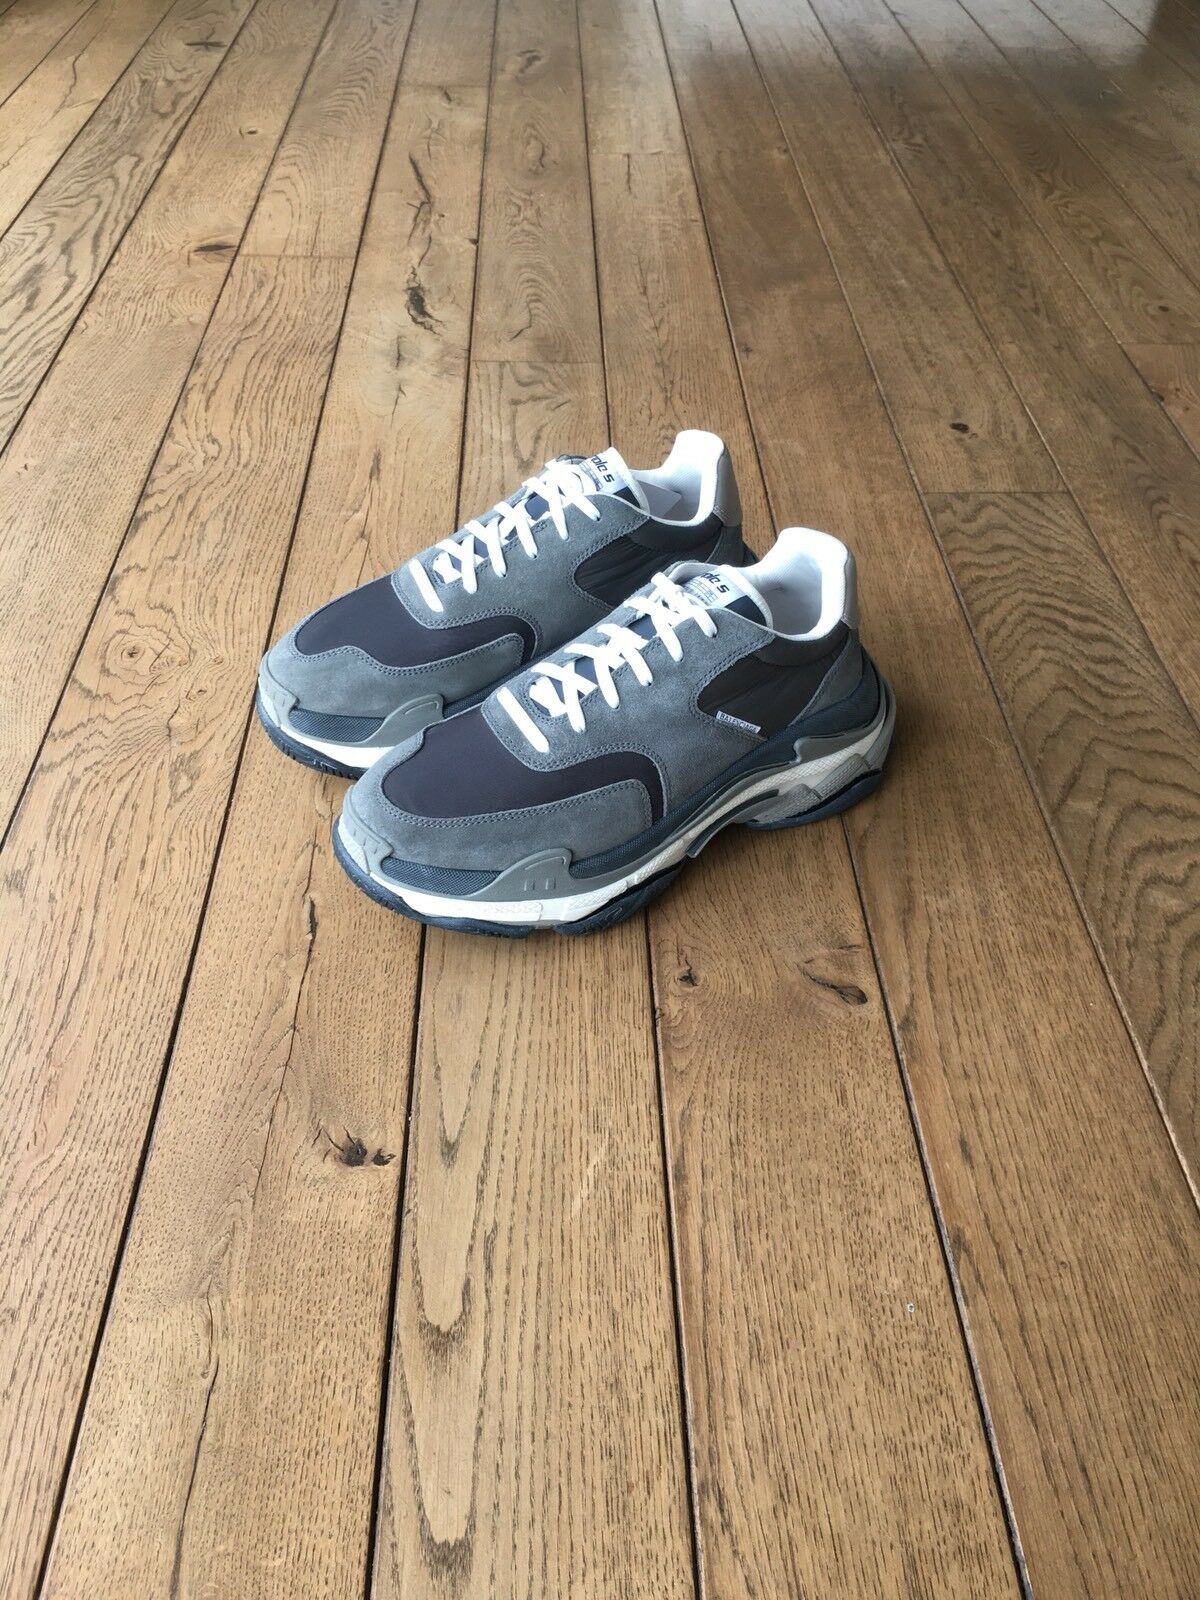 Balenciaga Triple S 2.0 NY - Grey - EU42 UK8